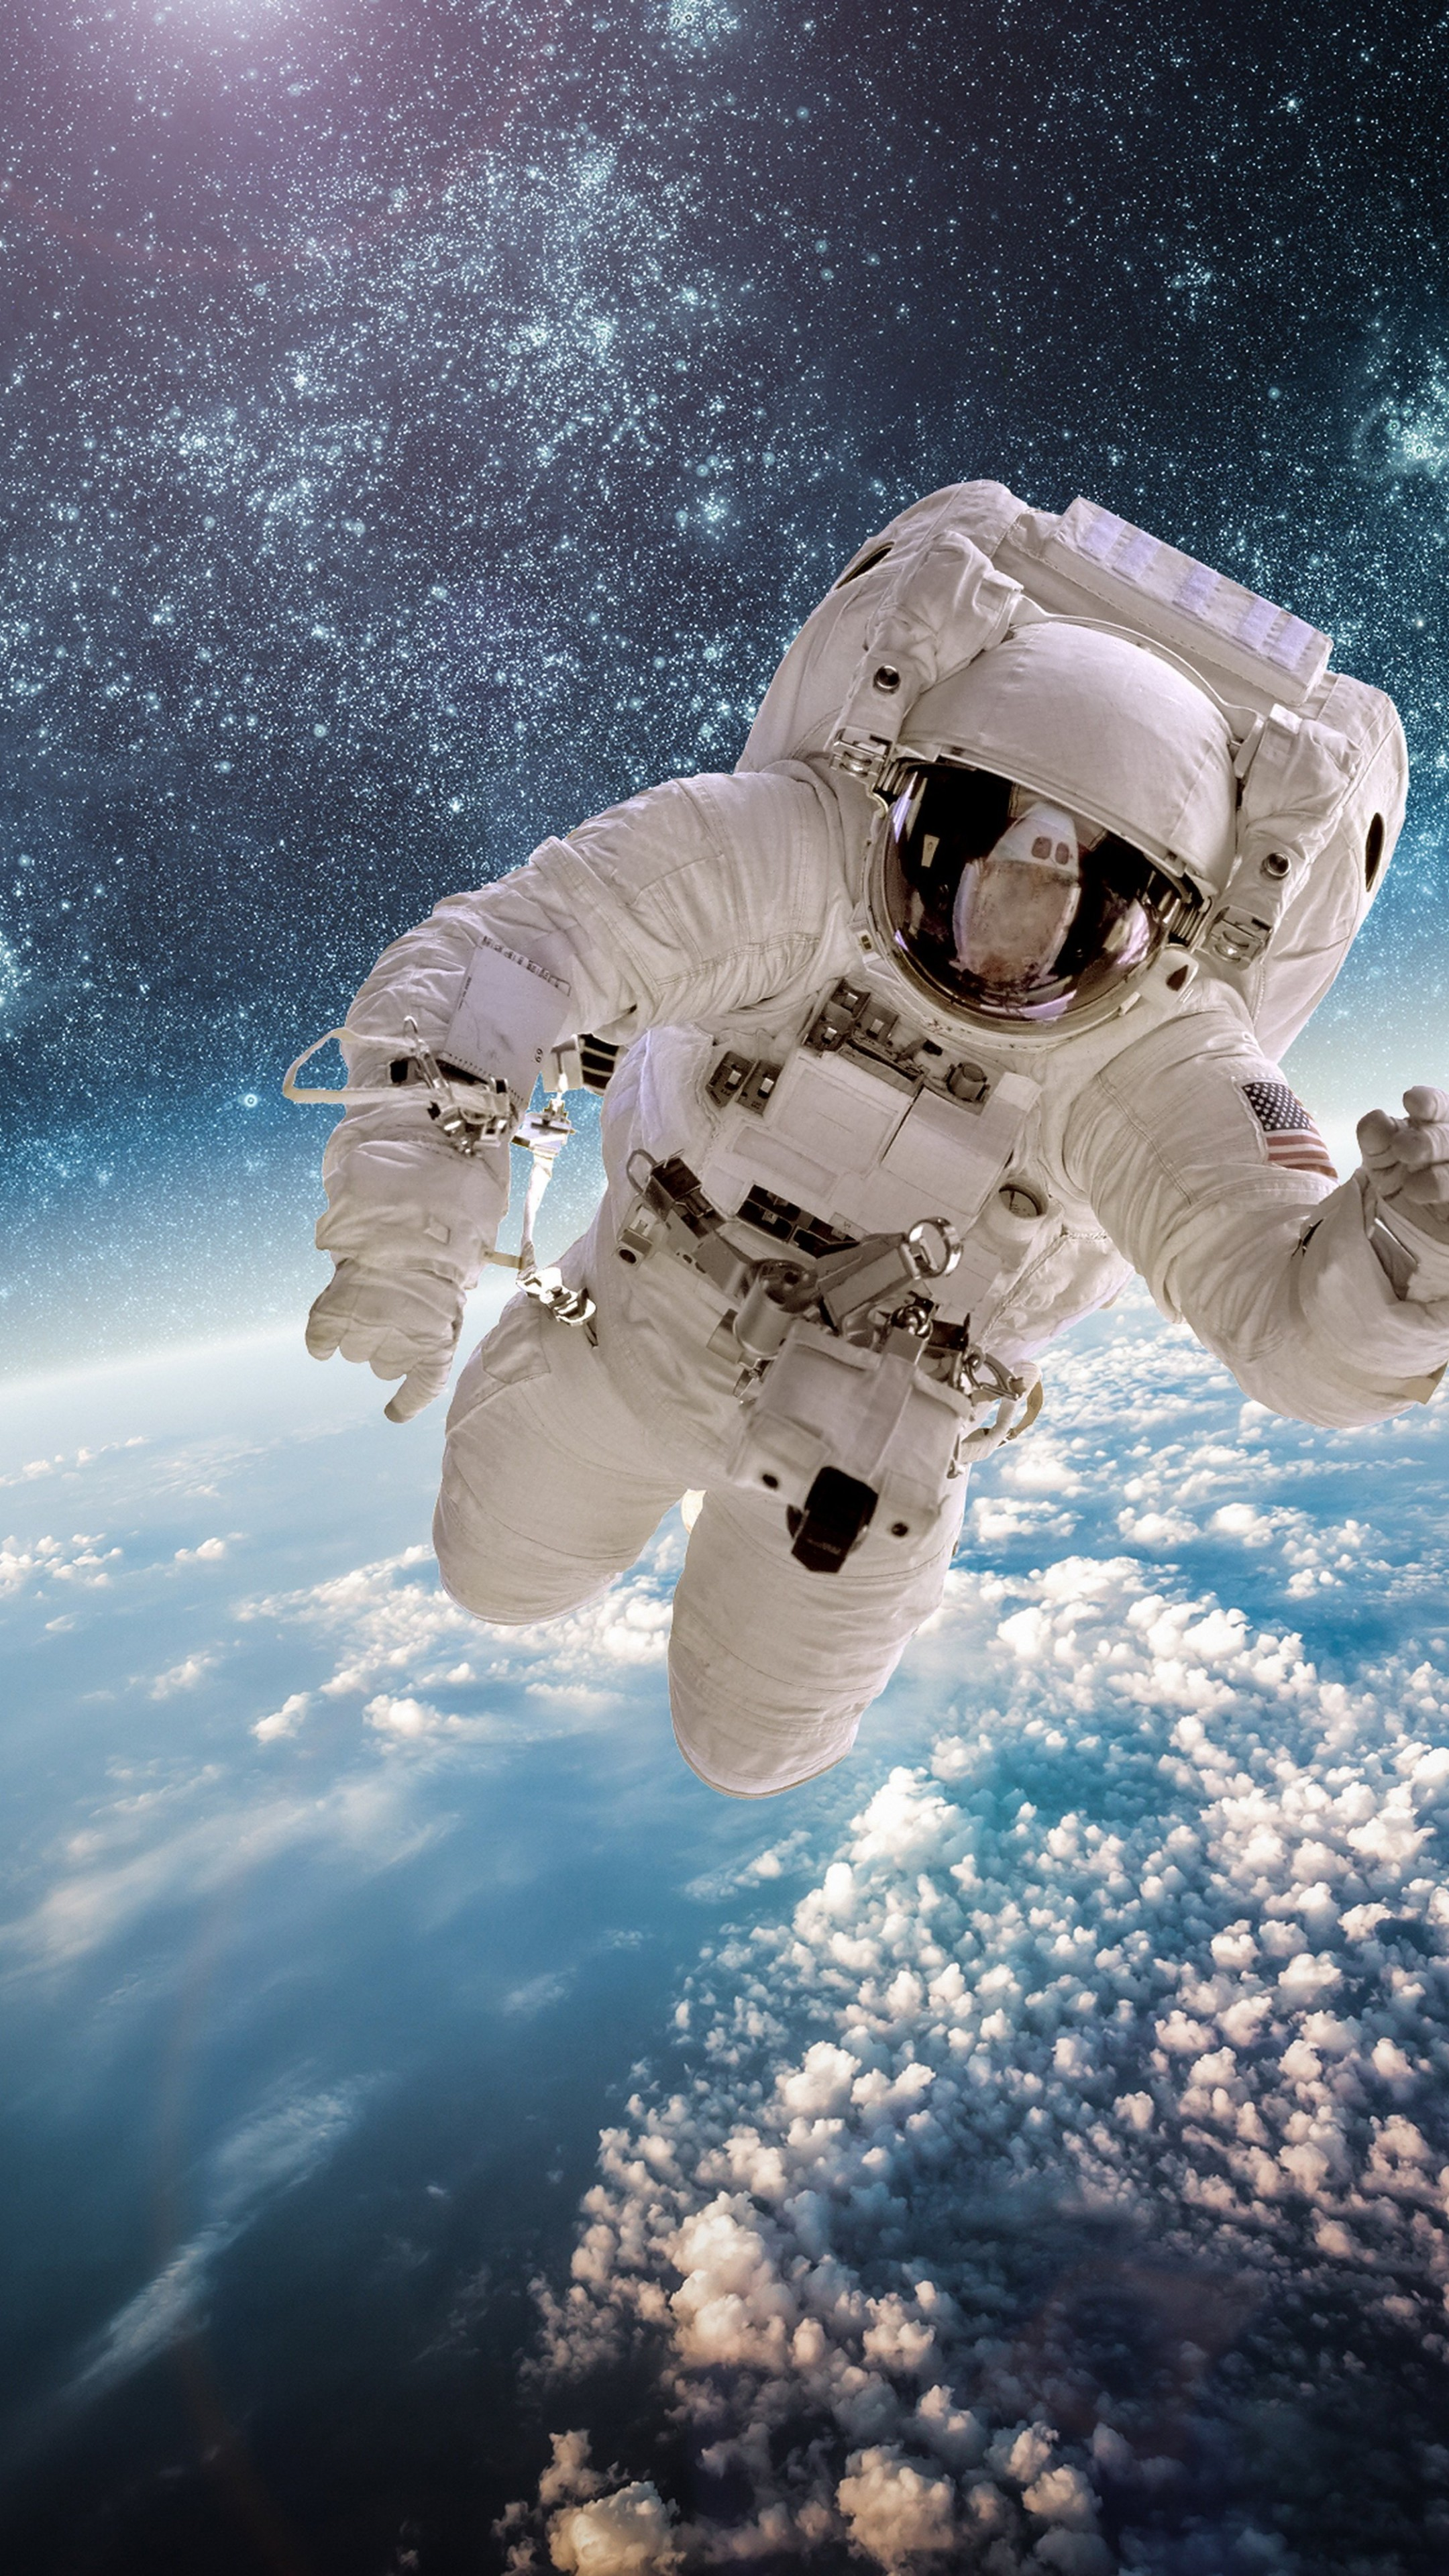 Iphone X Funny Wallpaper Wallpaper Astronaut Stars Space Galaxy 5k Space 17776